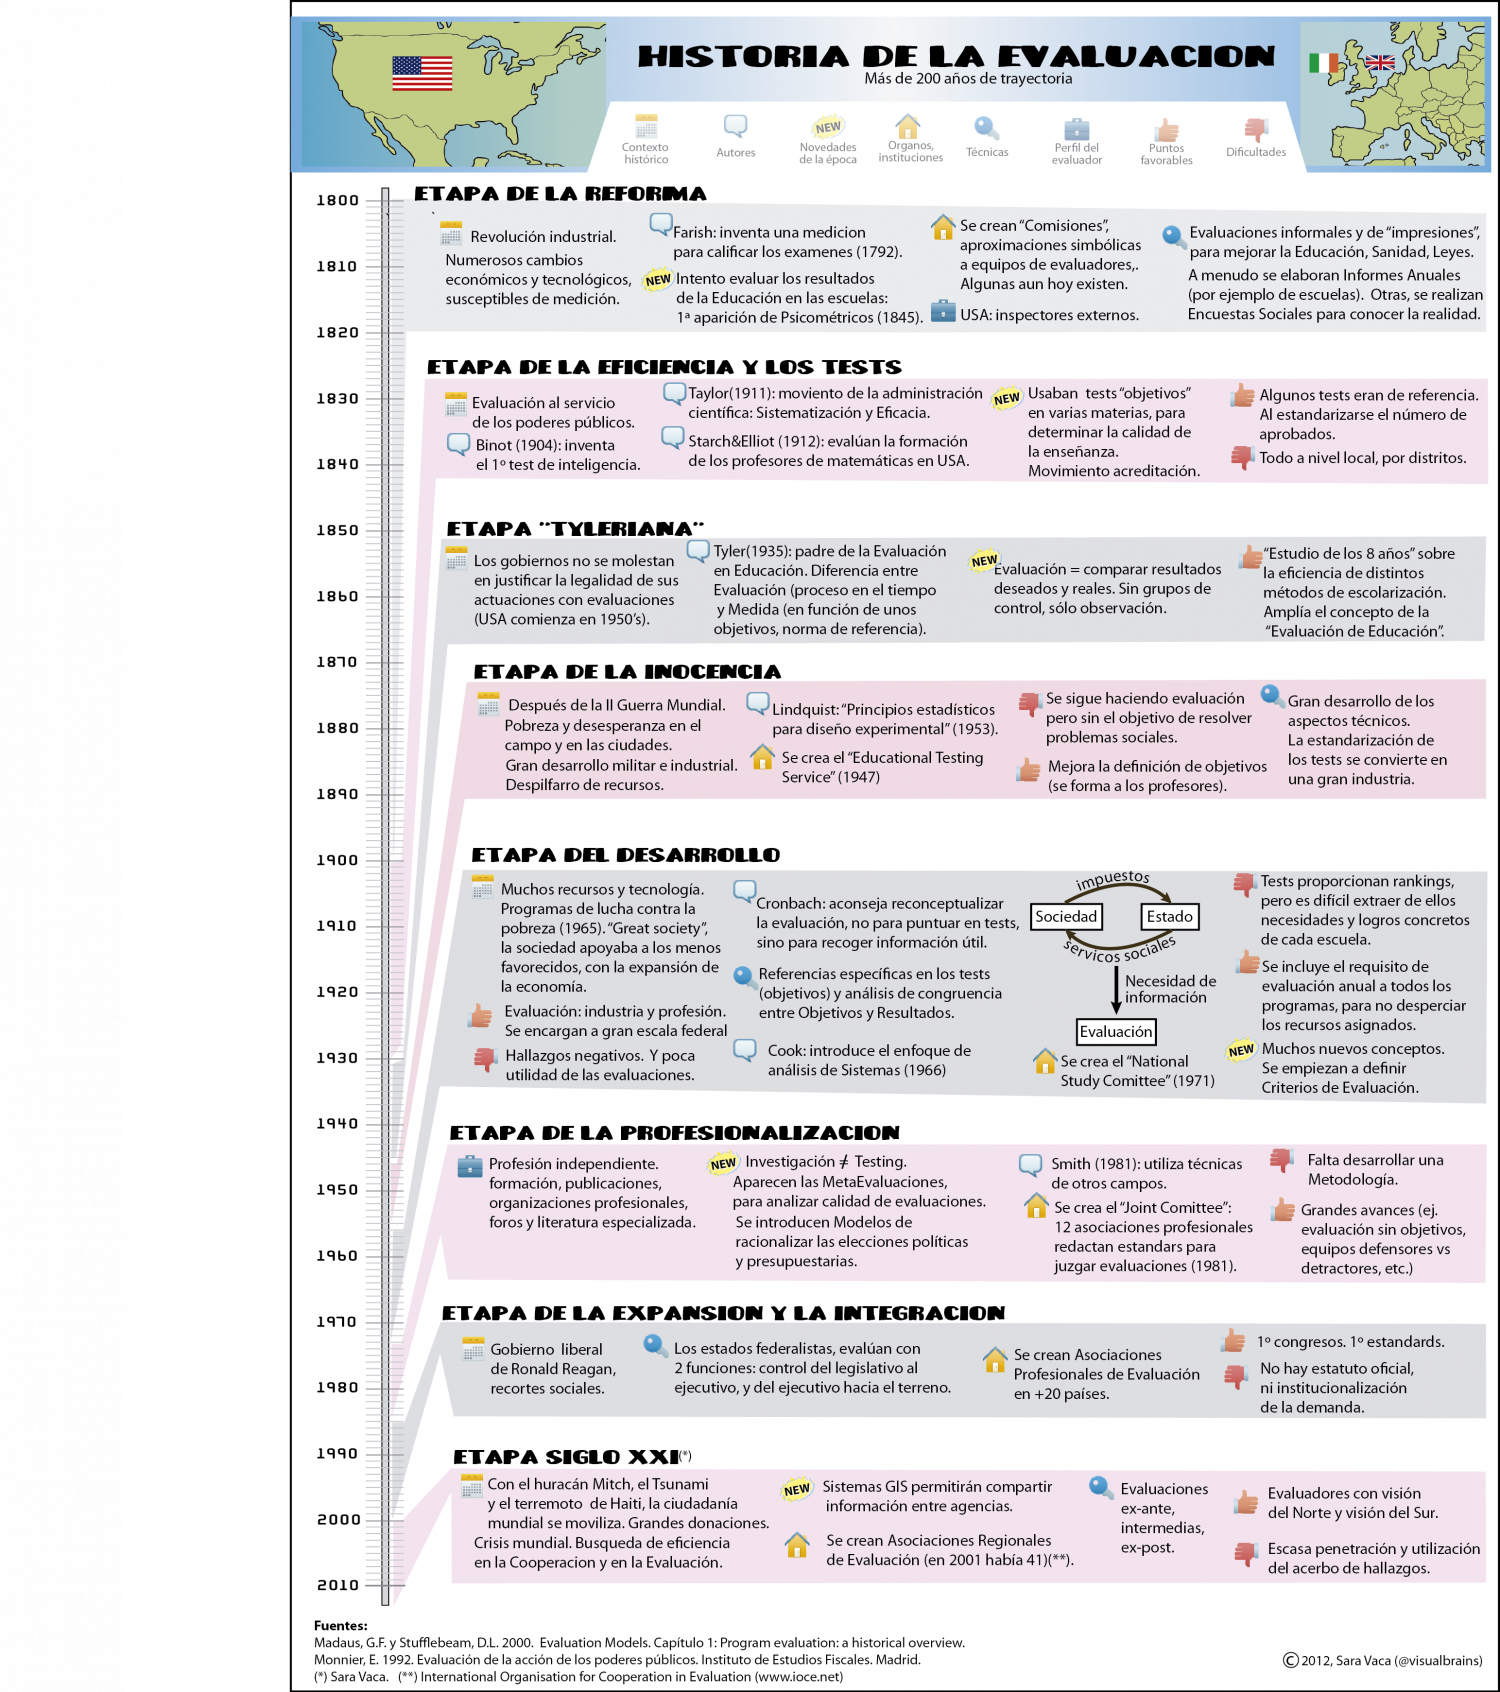 The history of Evaluation discipline Infographic